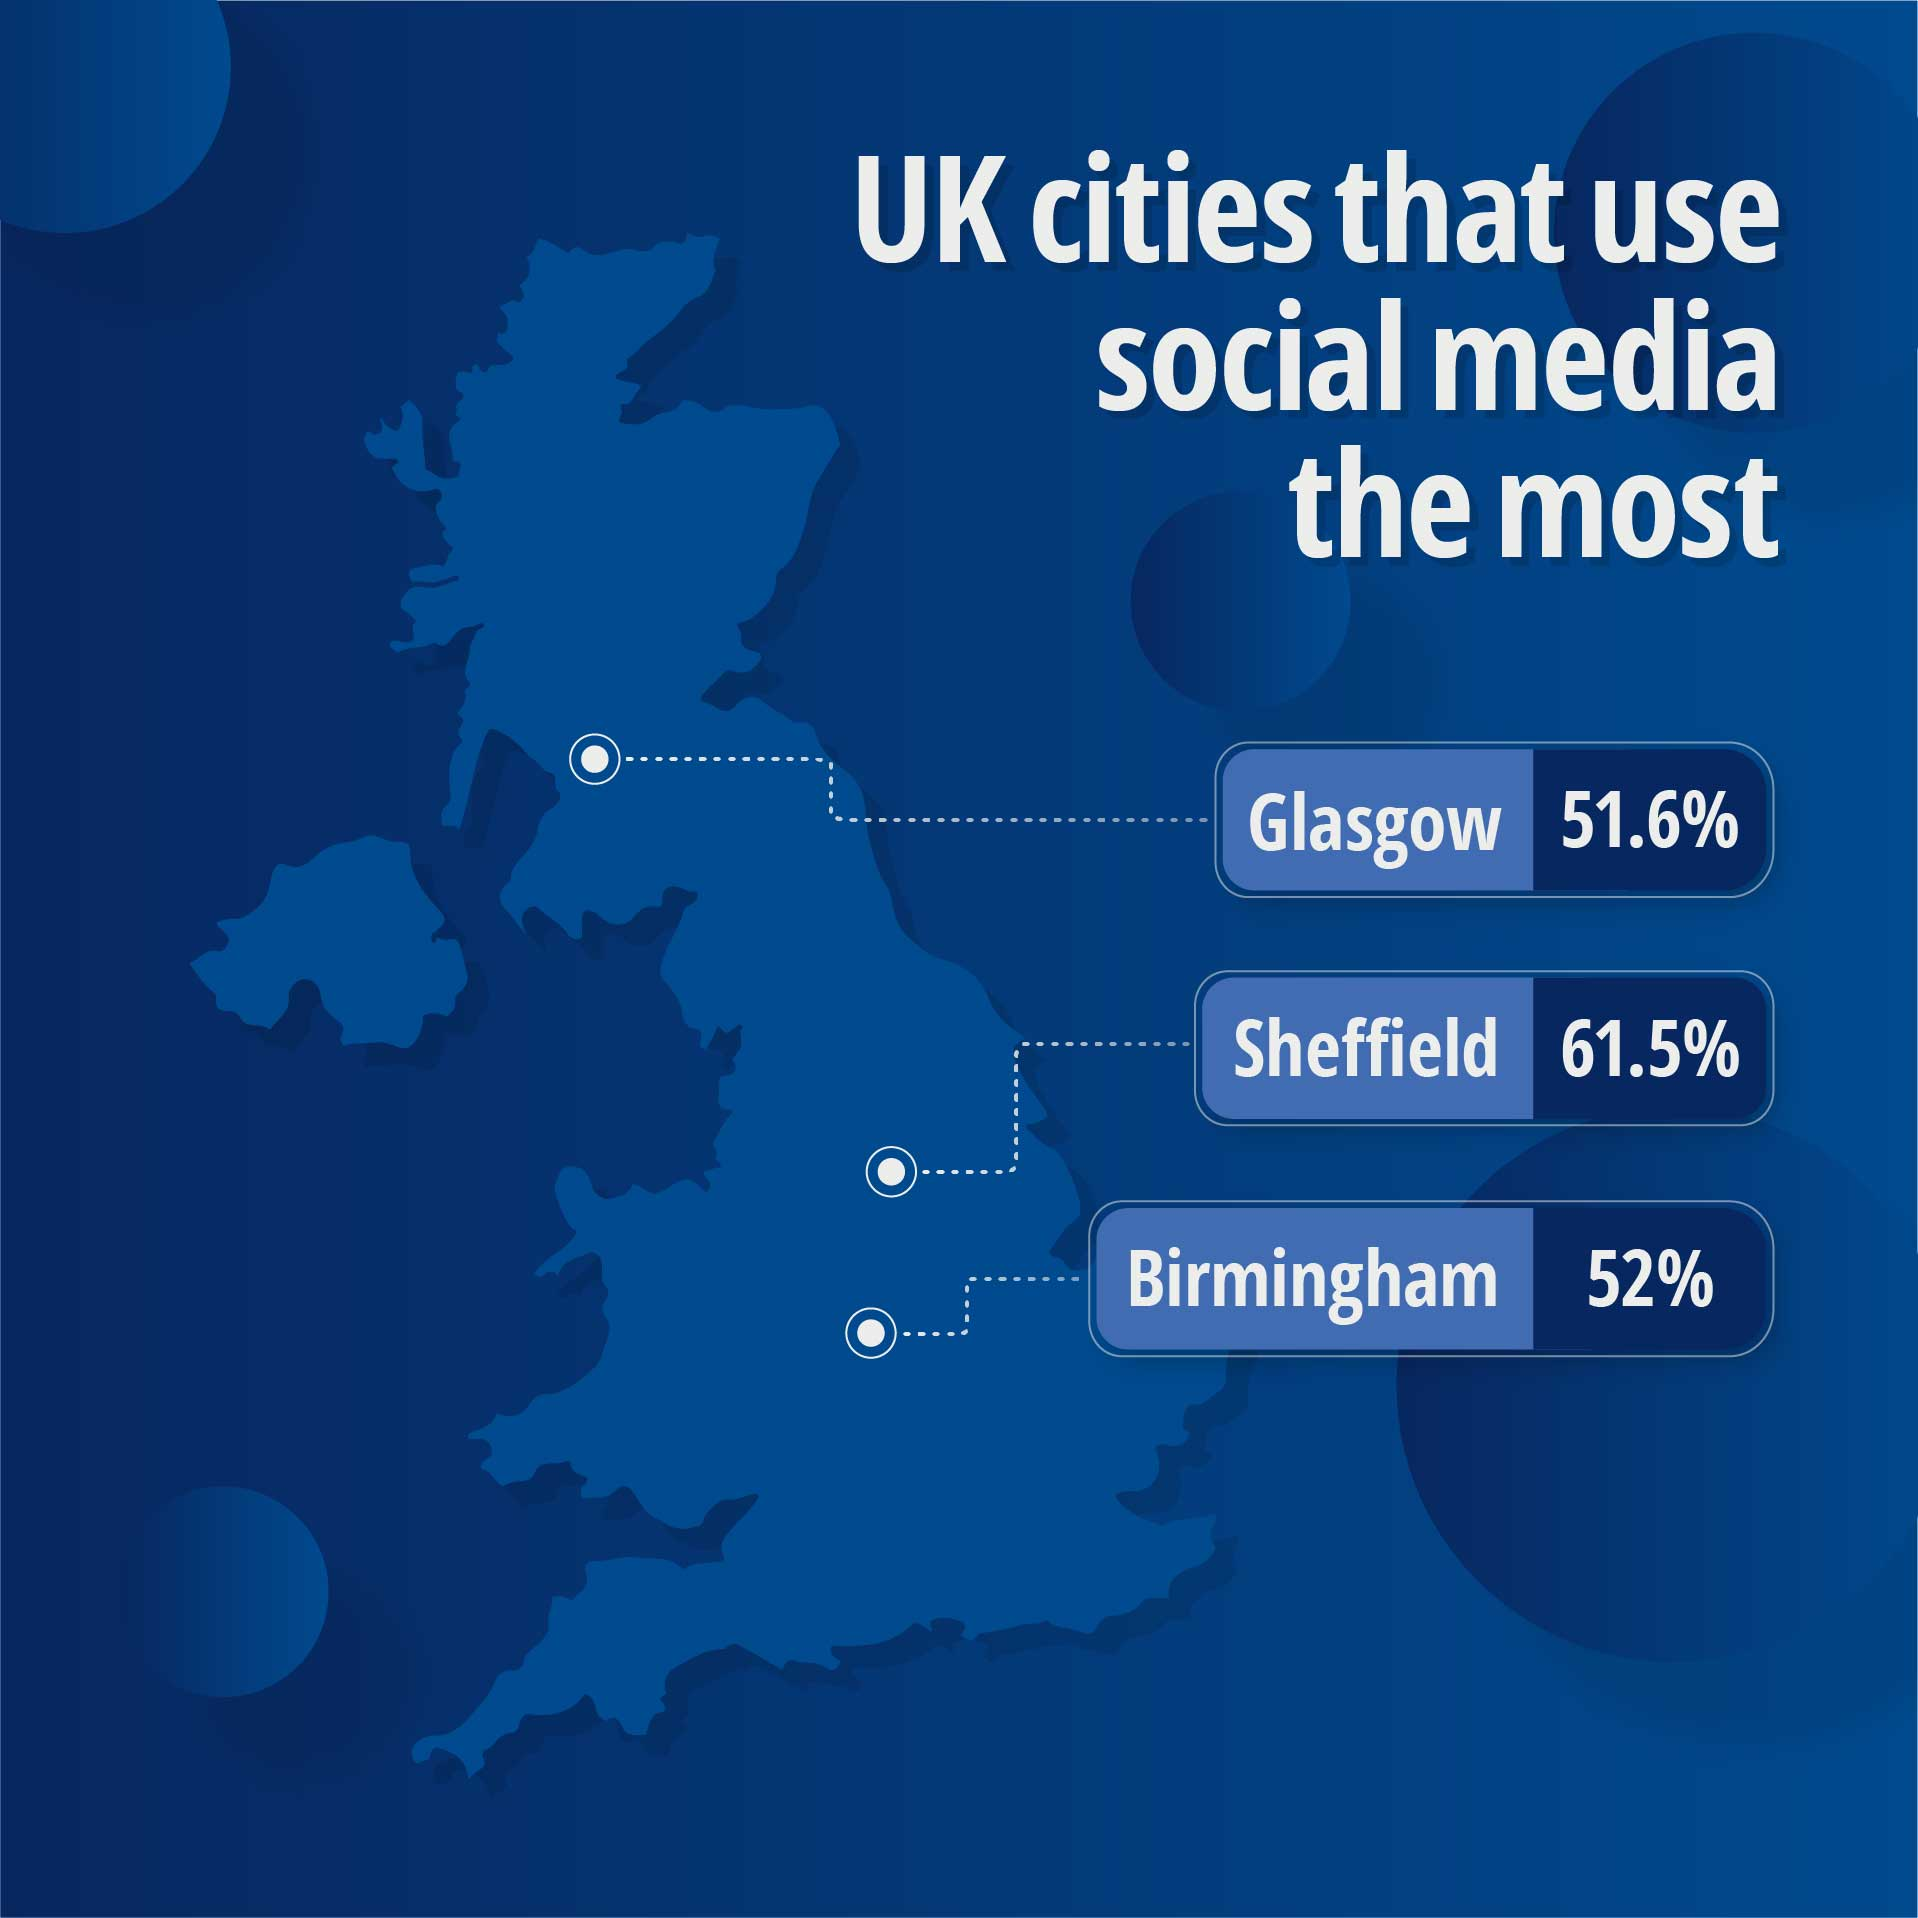 Asset: UK cities that use social media the most